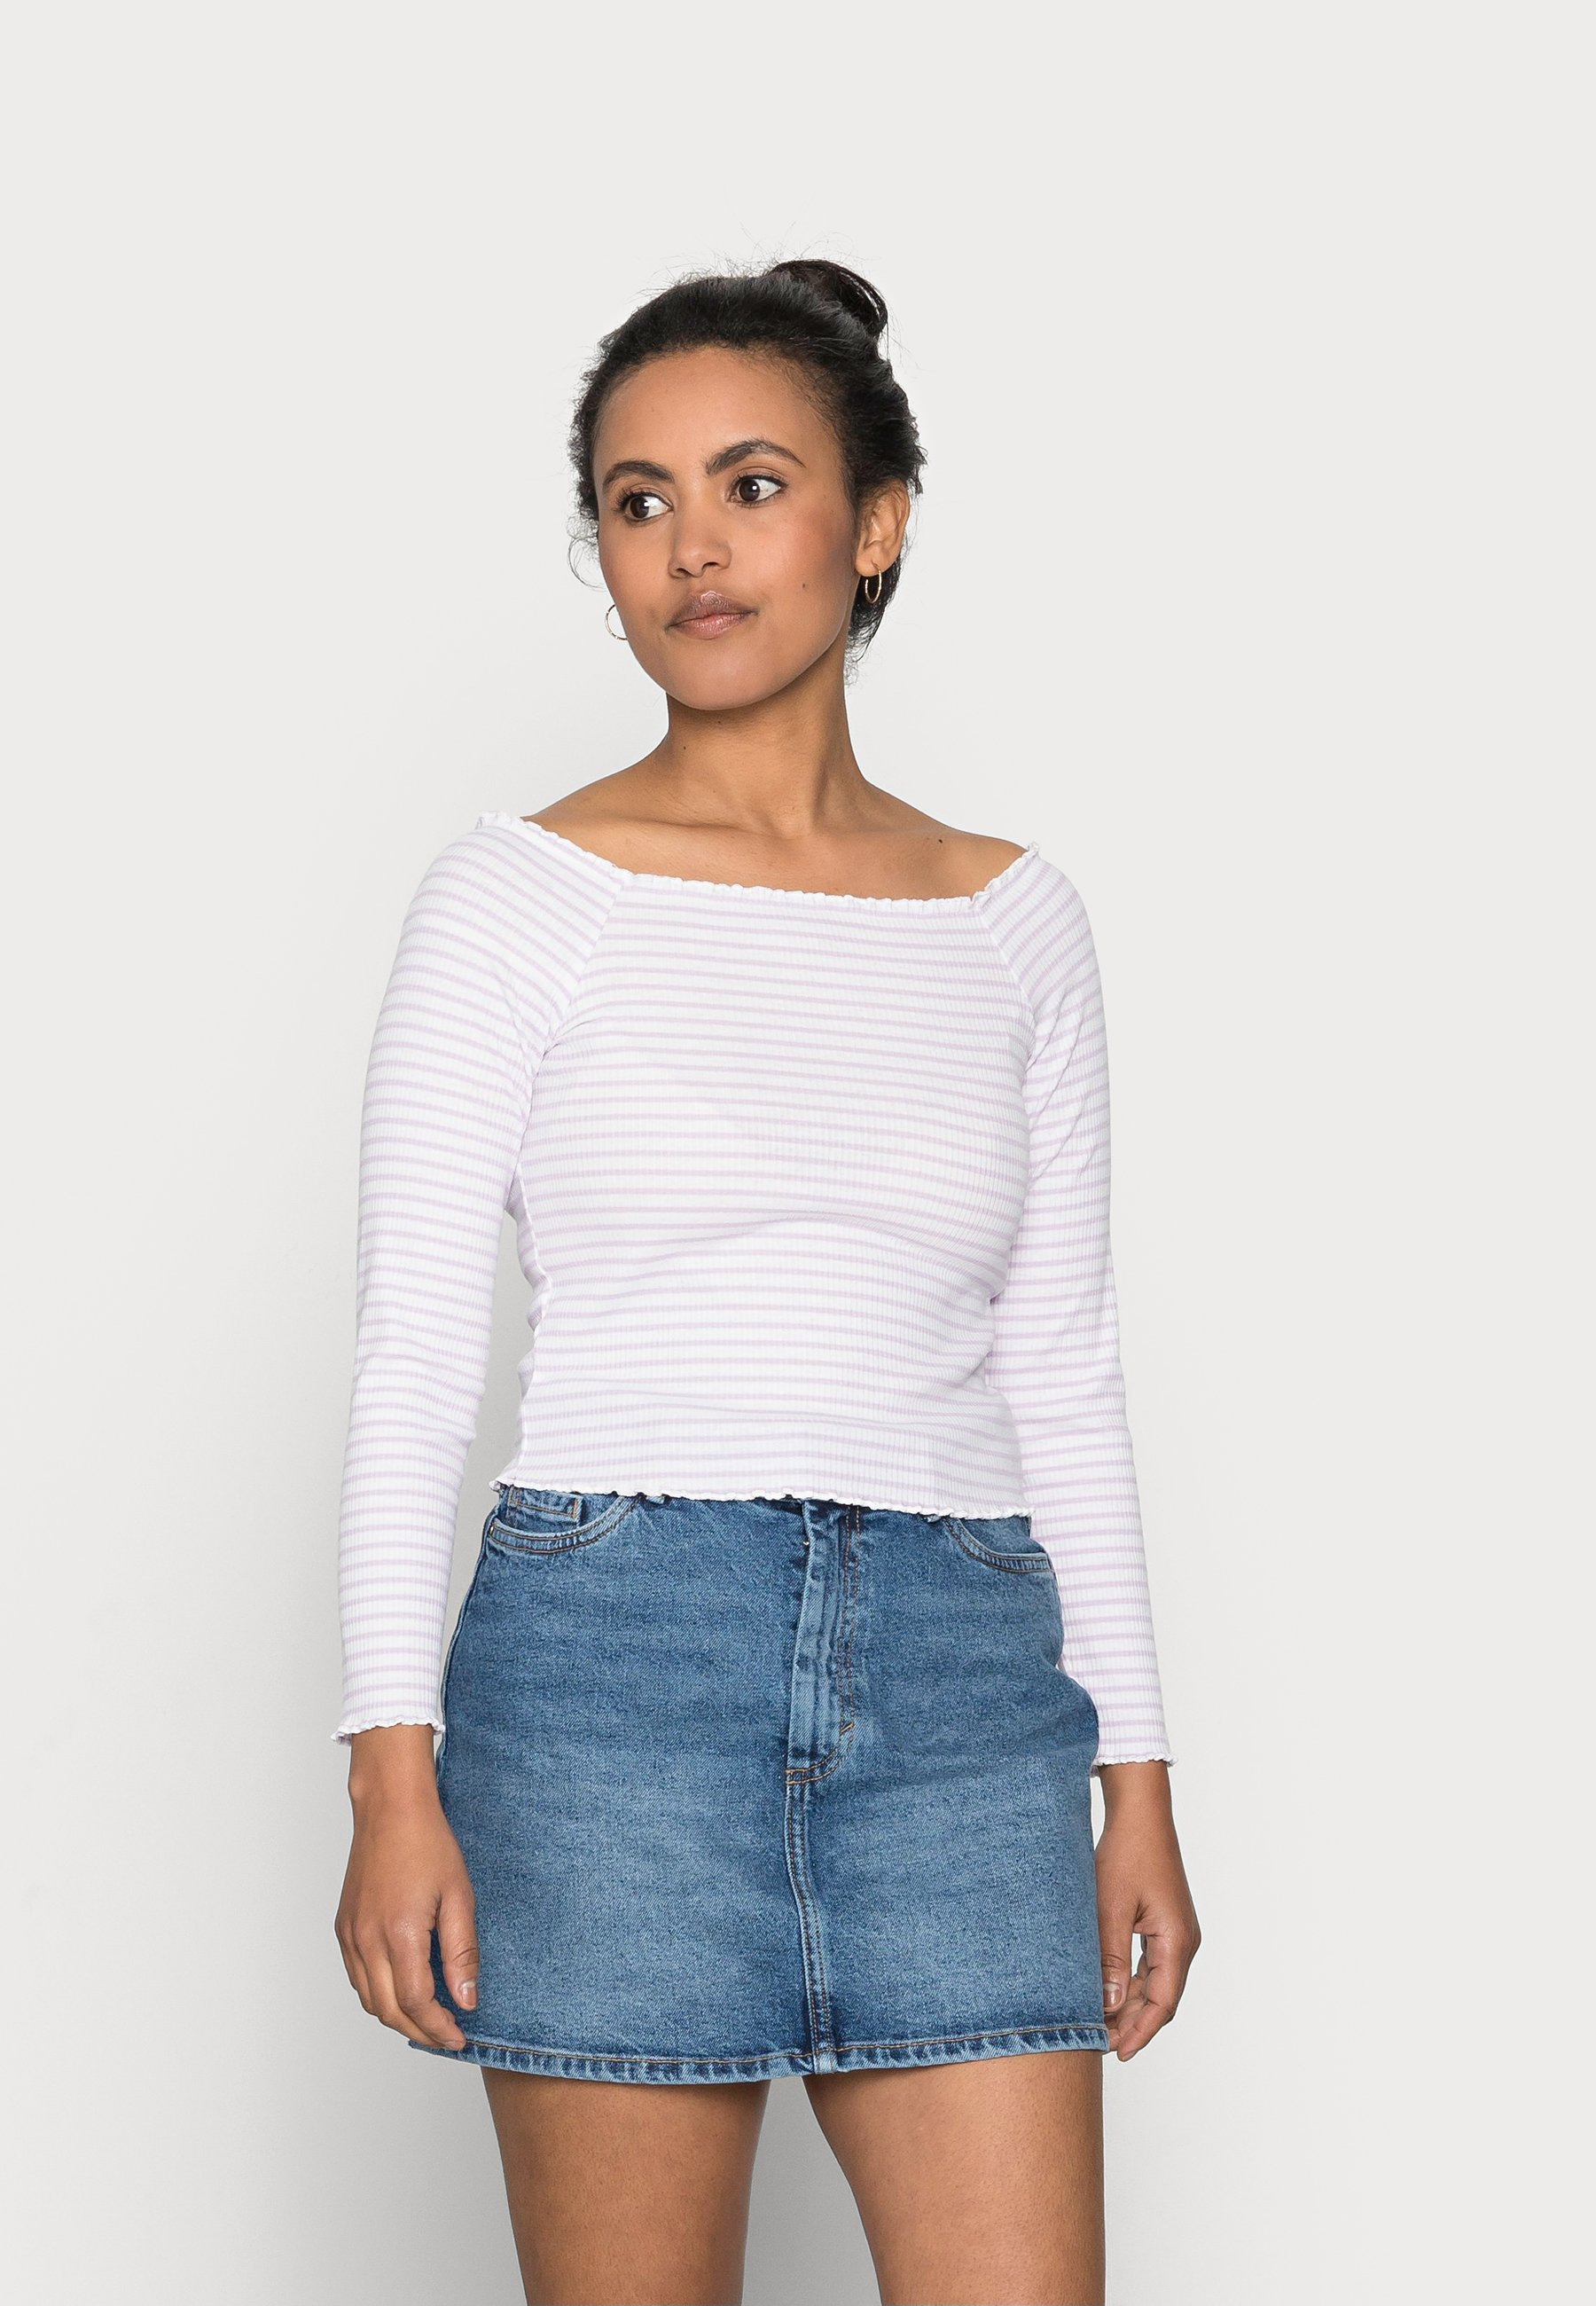 Women PCALICIA OFF-SHOULDER TOP - Long sleeved top